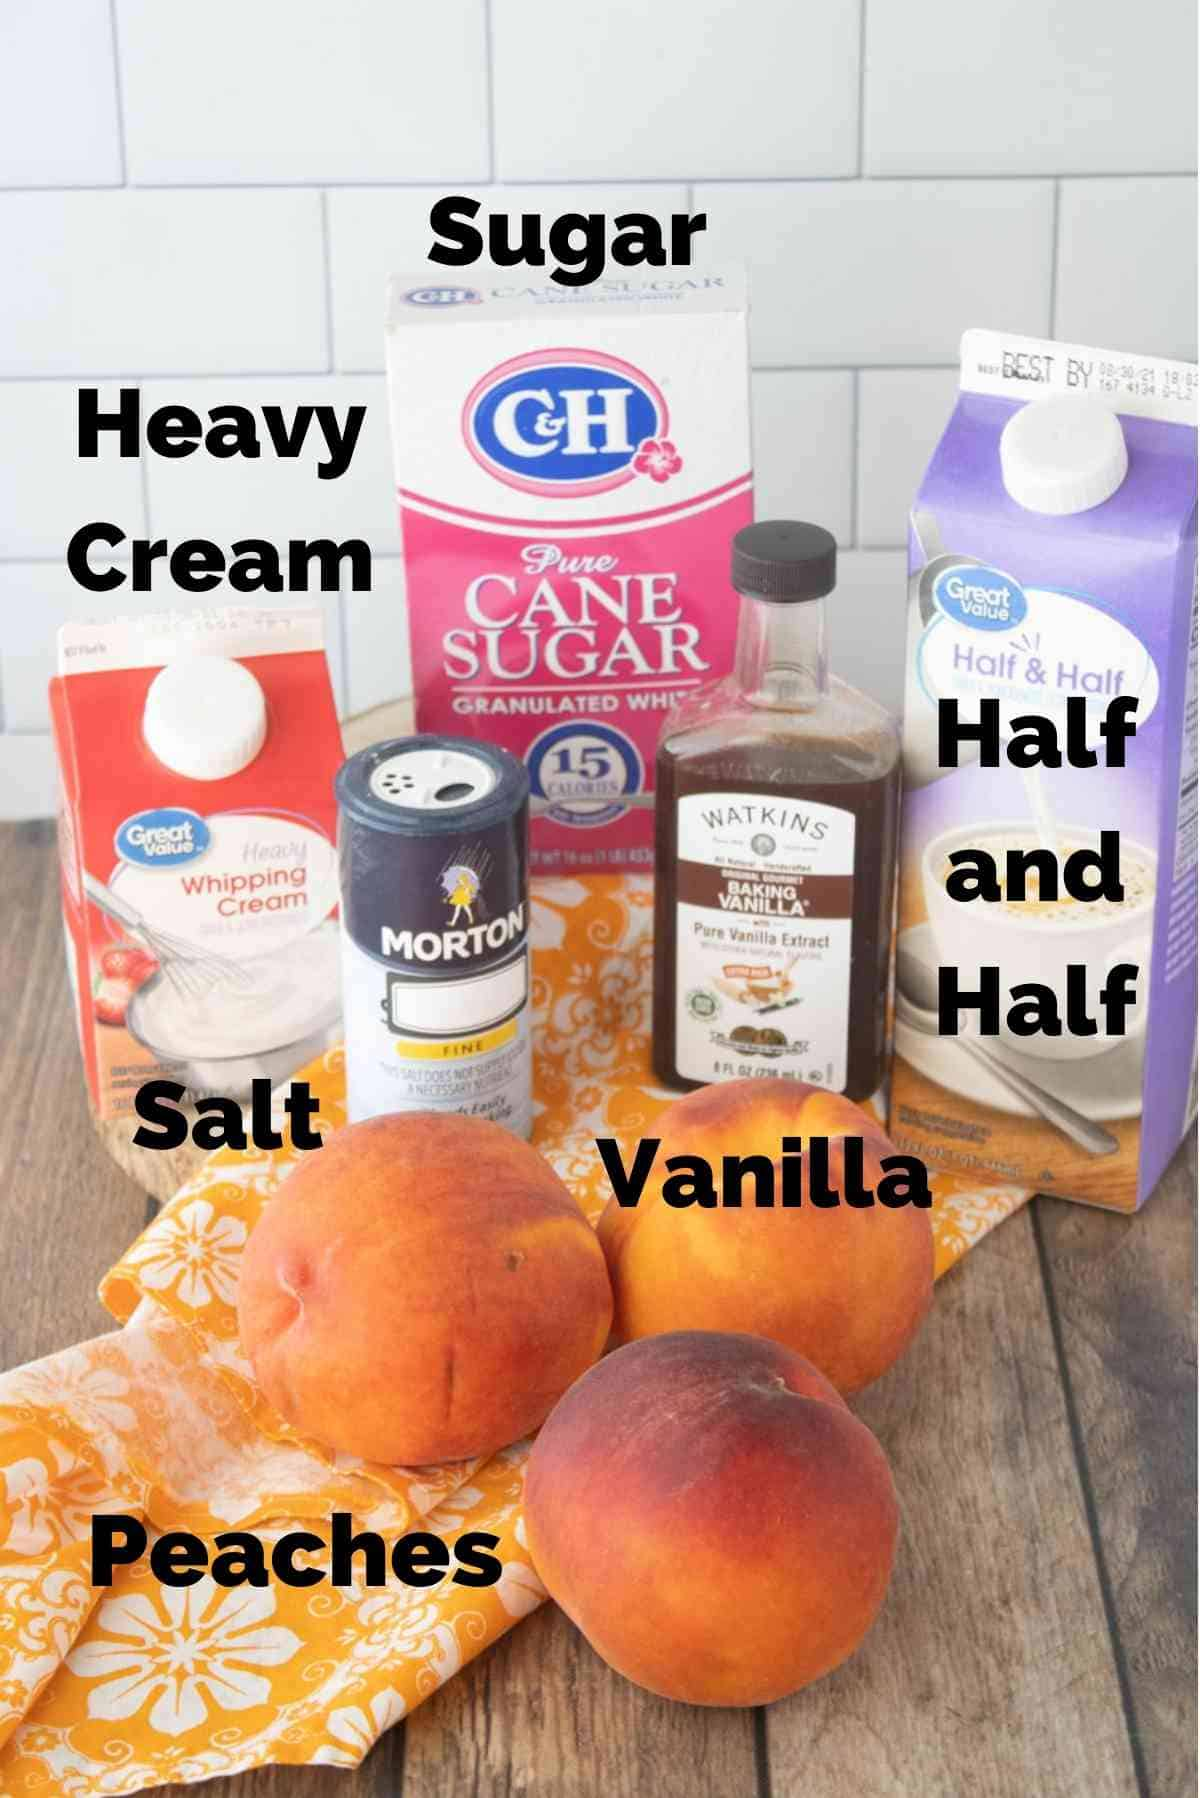 Just six ingredients for this homemade ice cream!